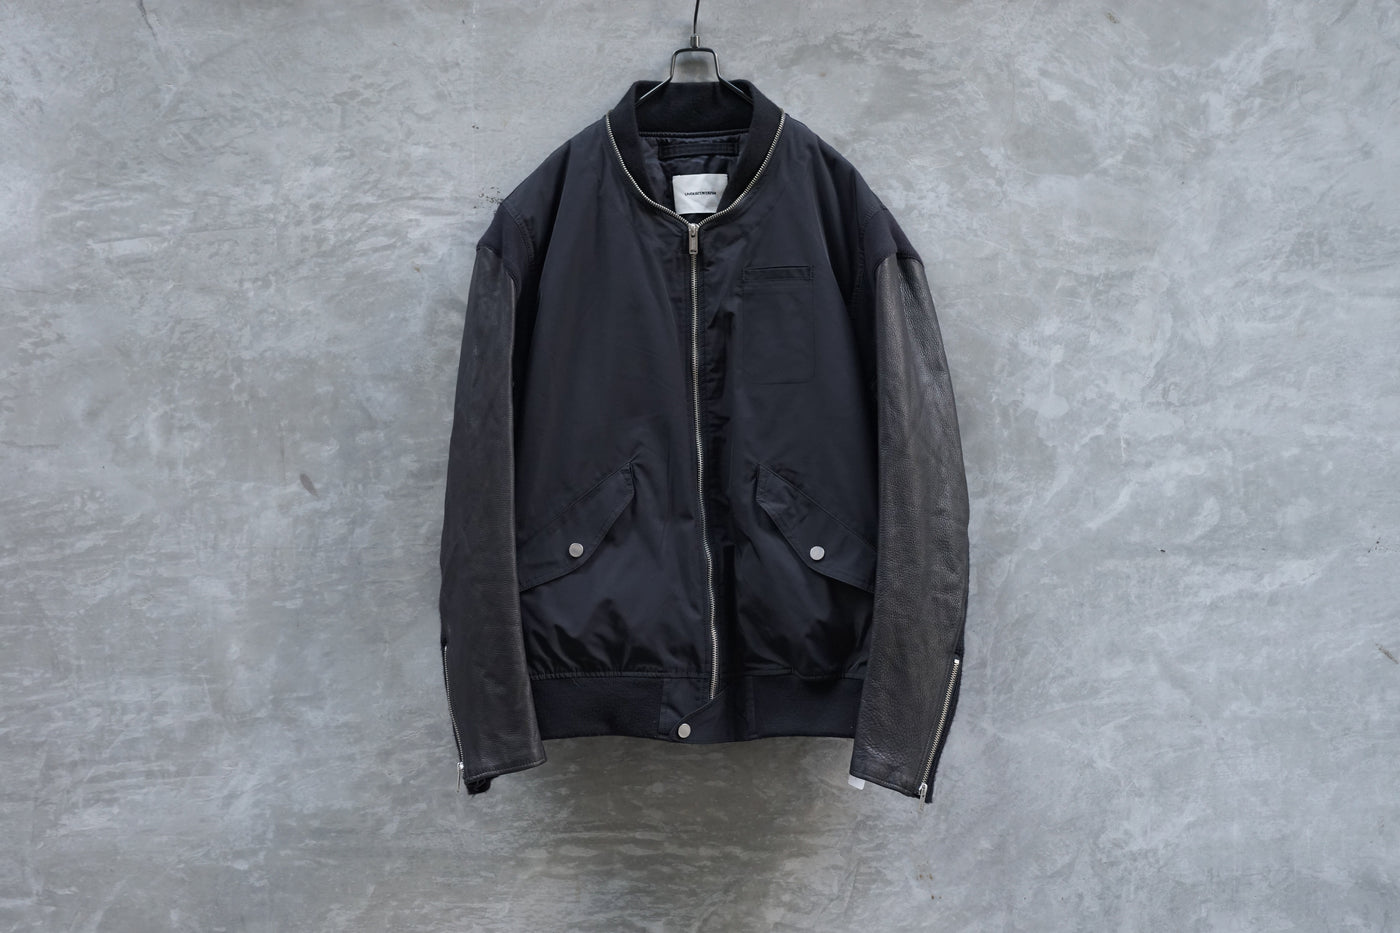 UNDERCOVERISM AW11 Leather Sleeve MA-1 Bomber Jacket